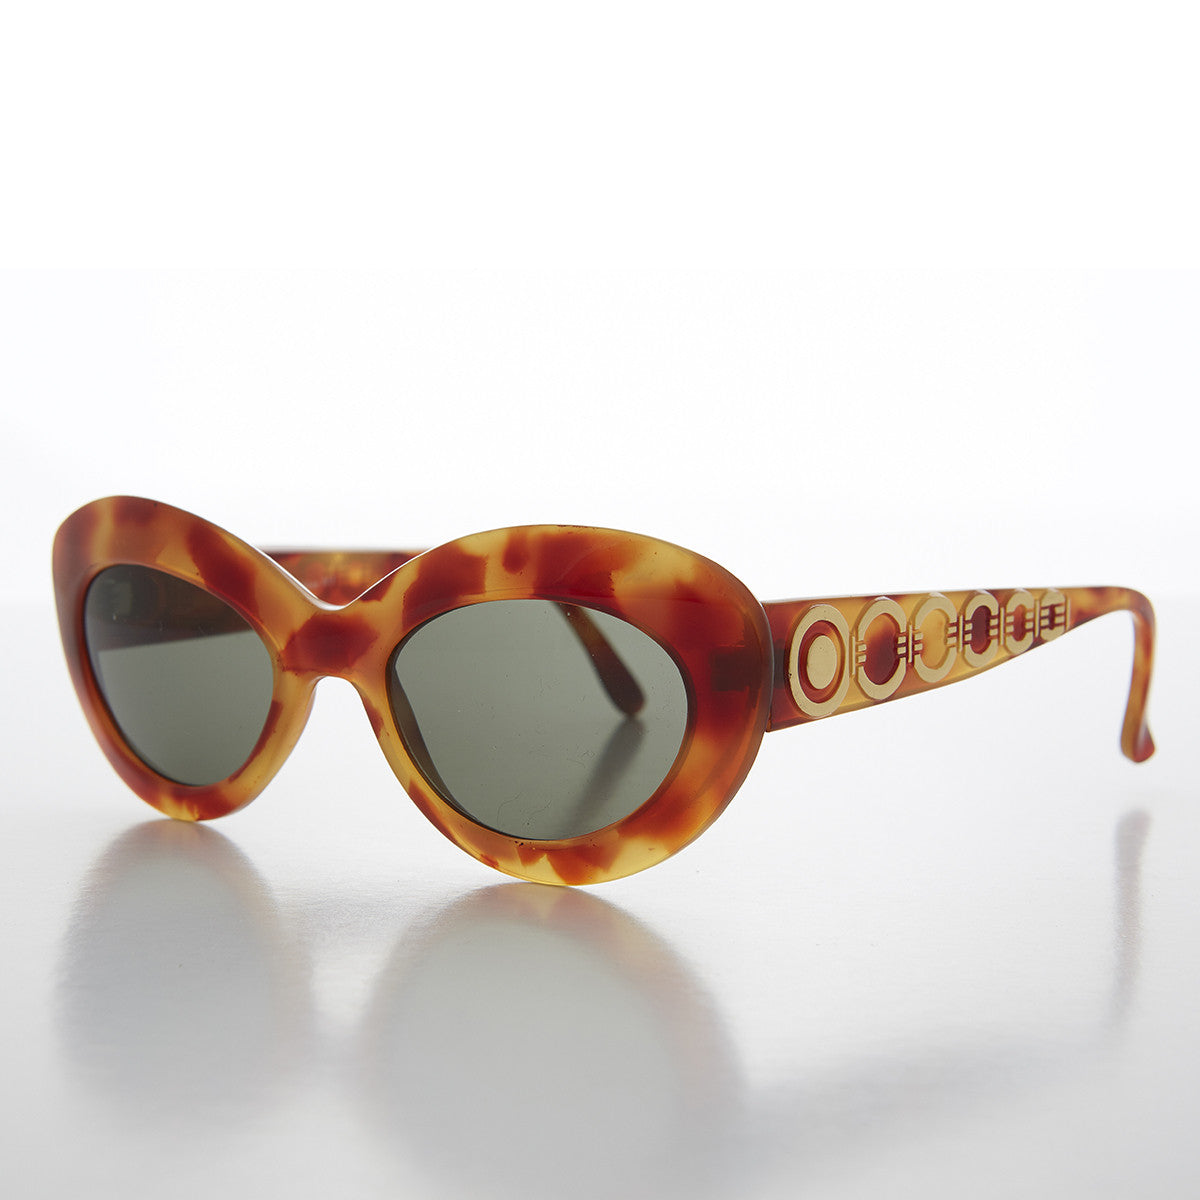 Mod Cat Eye Vintage Sunglass with Gold Temple Design - Ginny 2